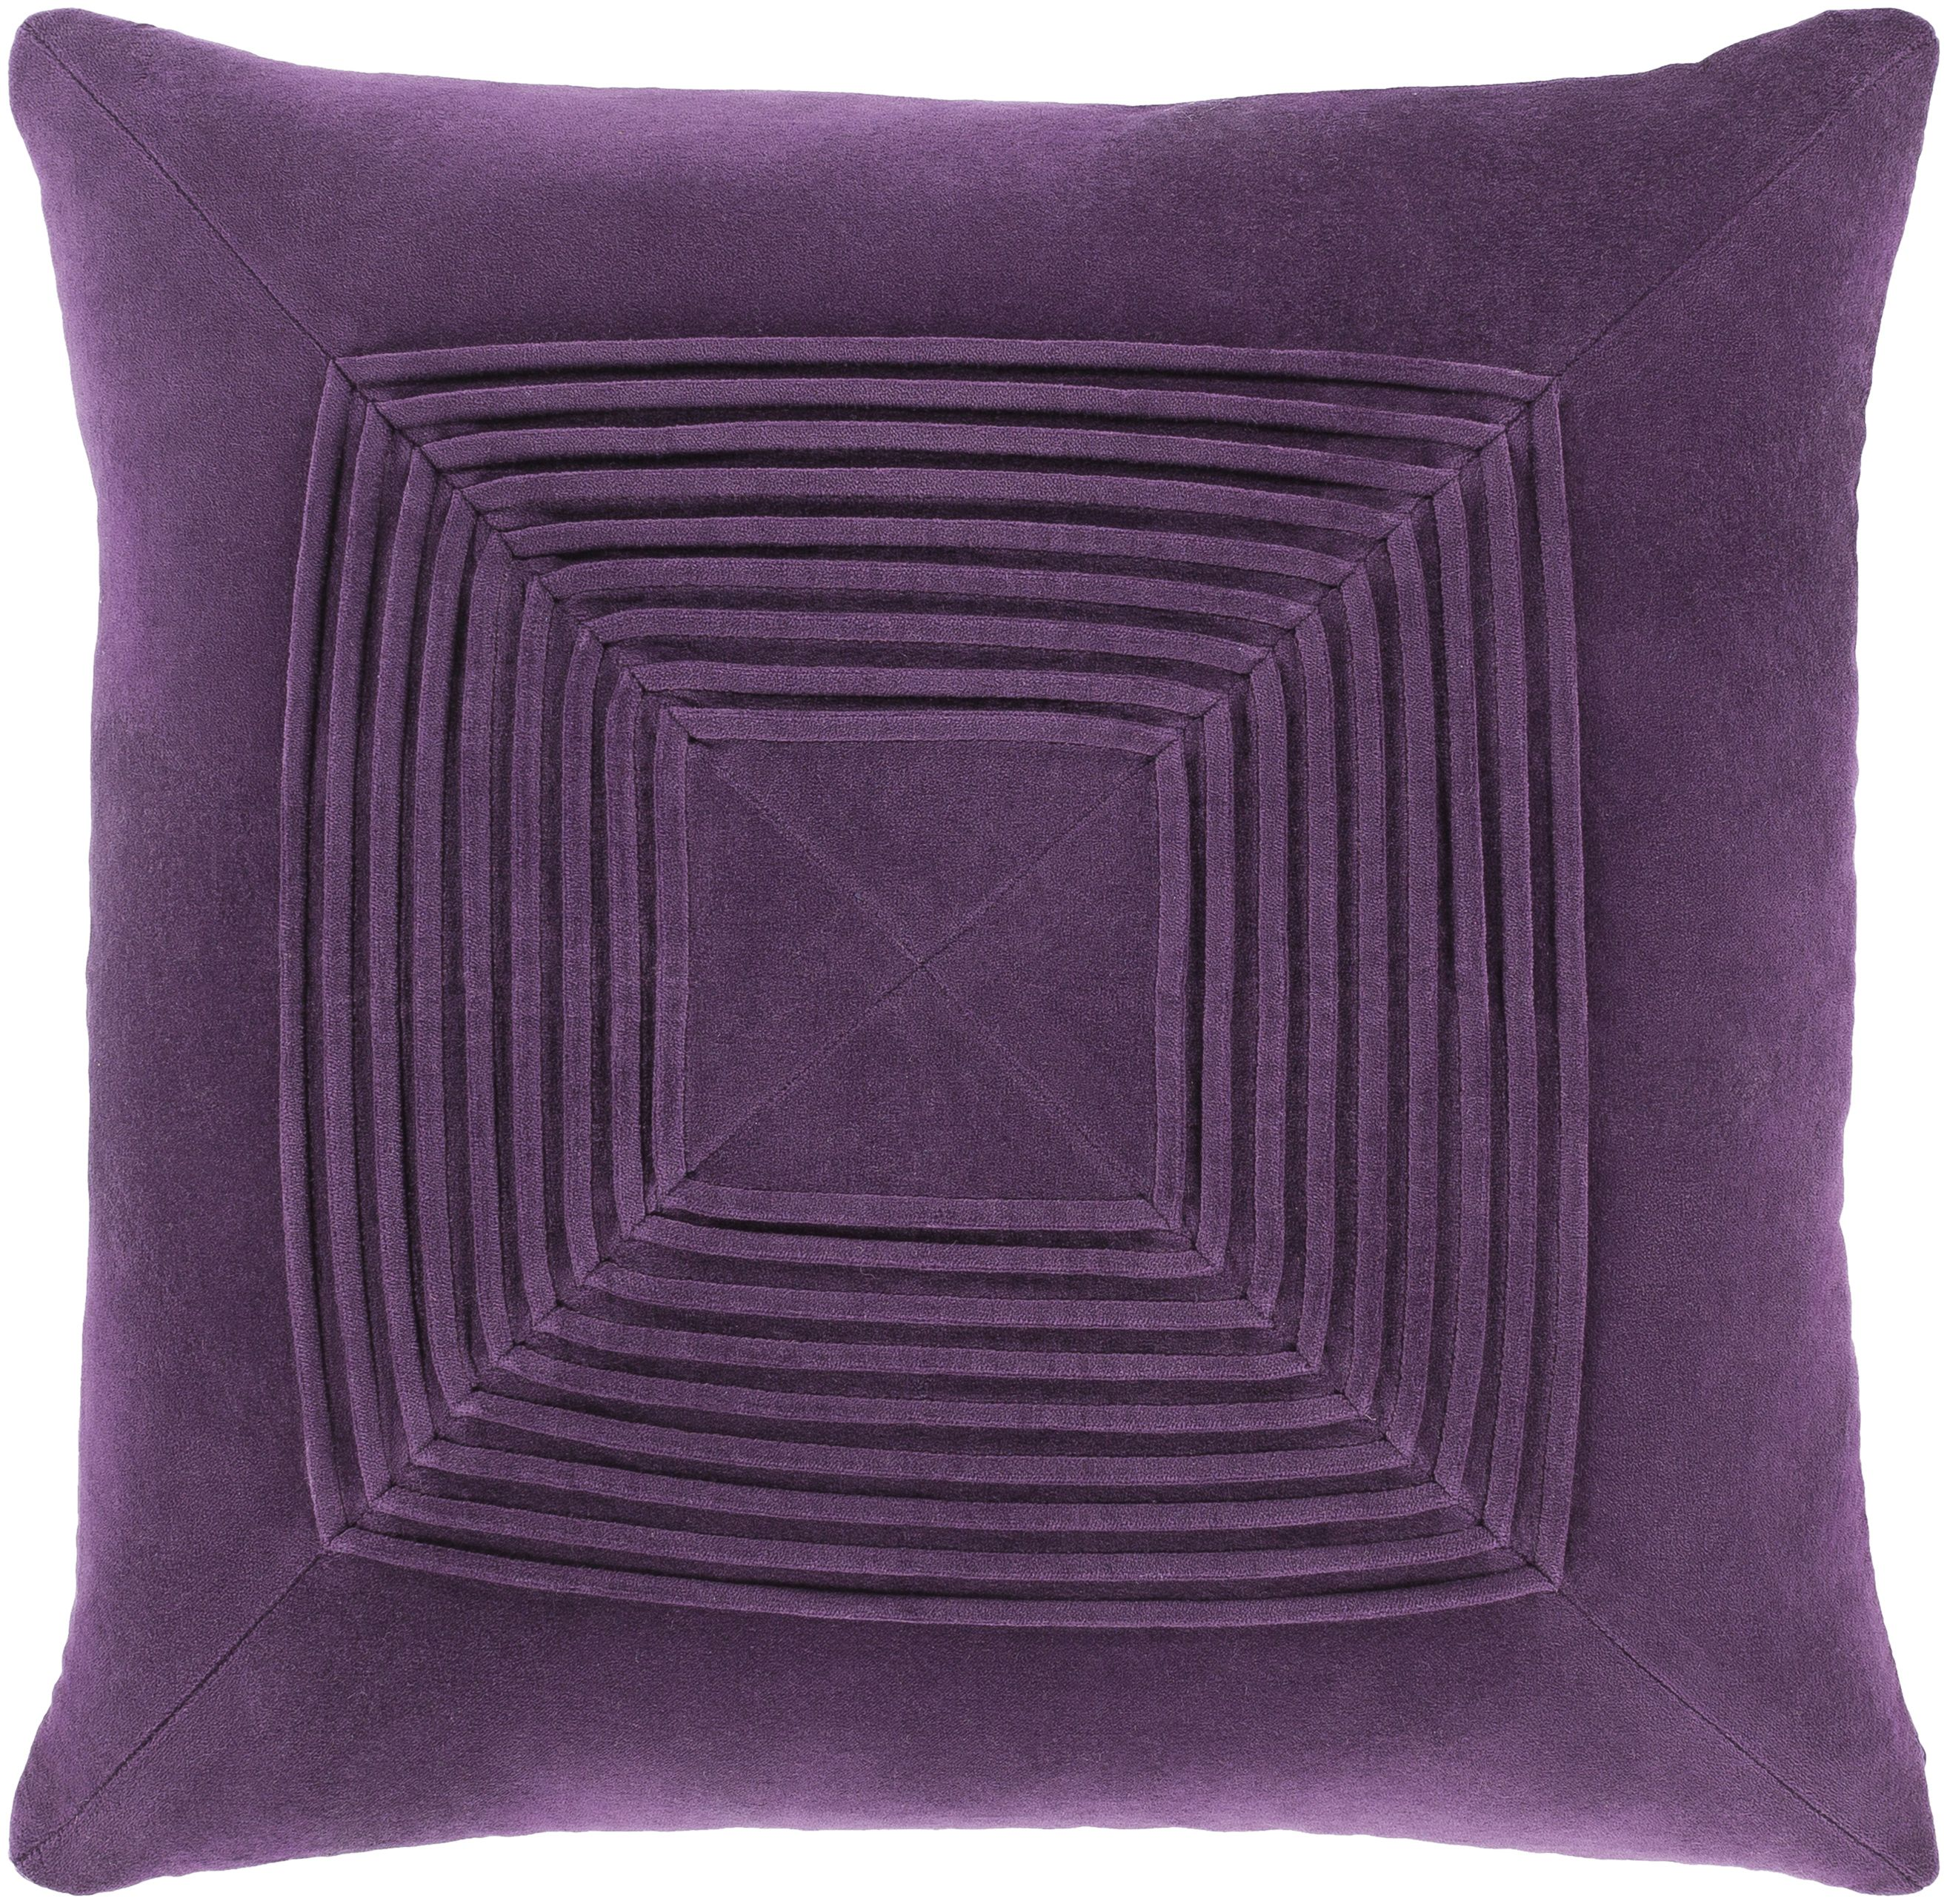 Rusk Pillow Cover In 2020 Pillows Pillow Covers